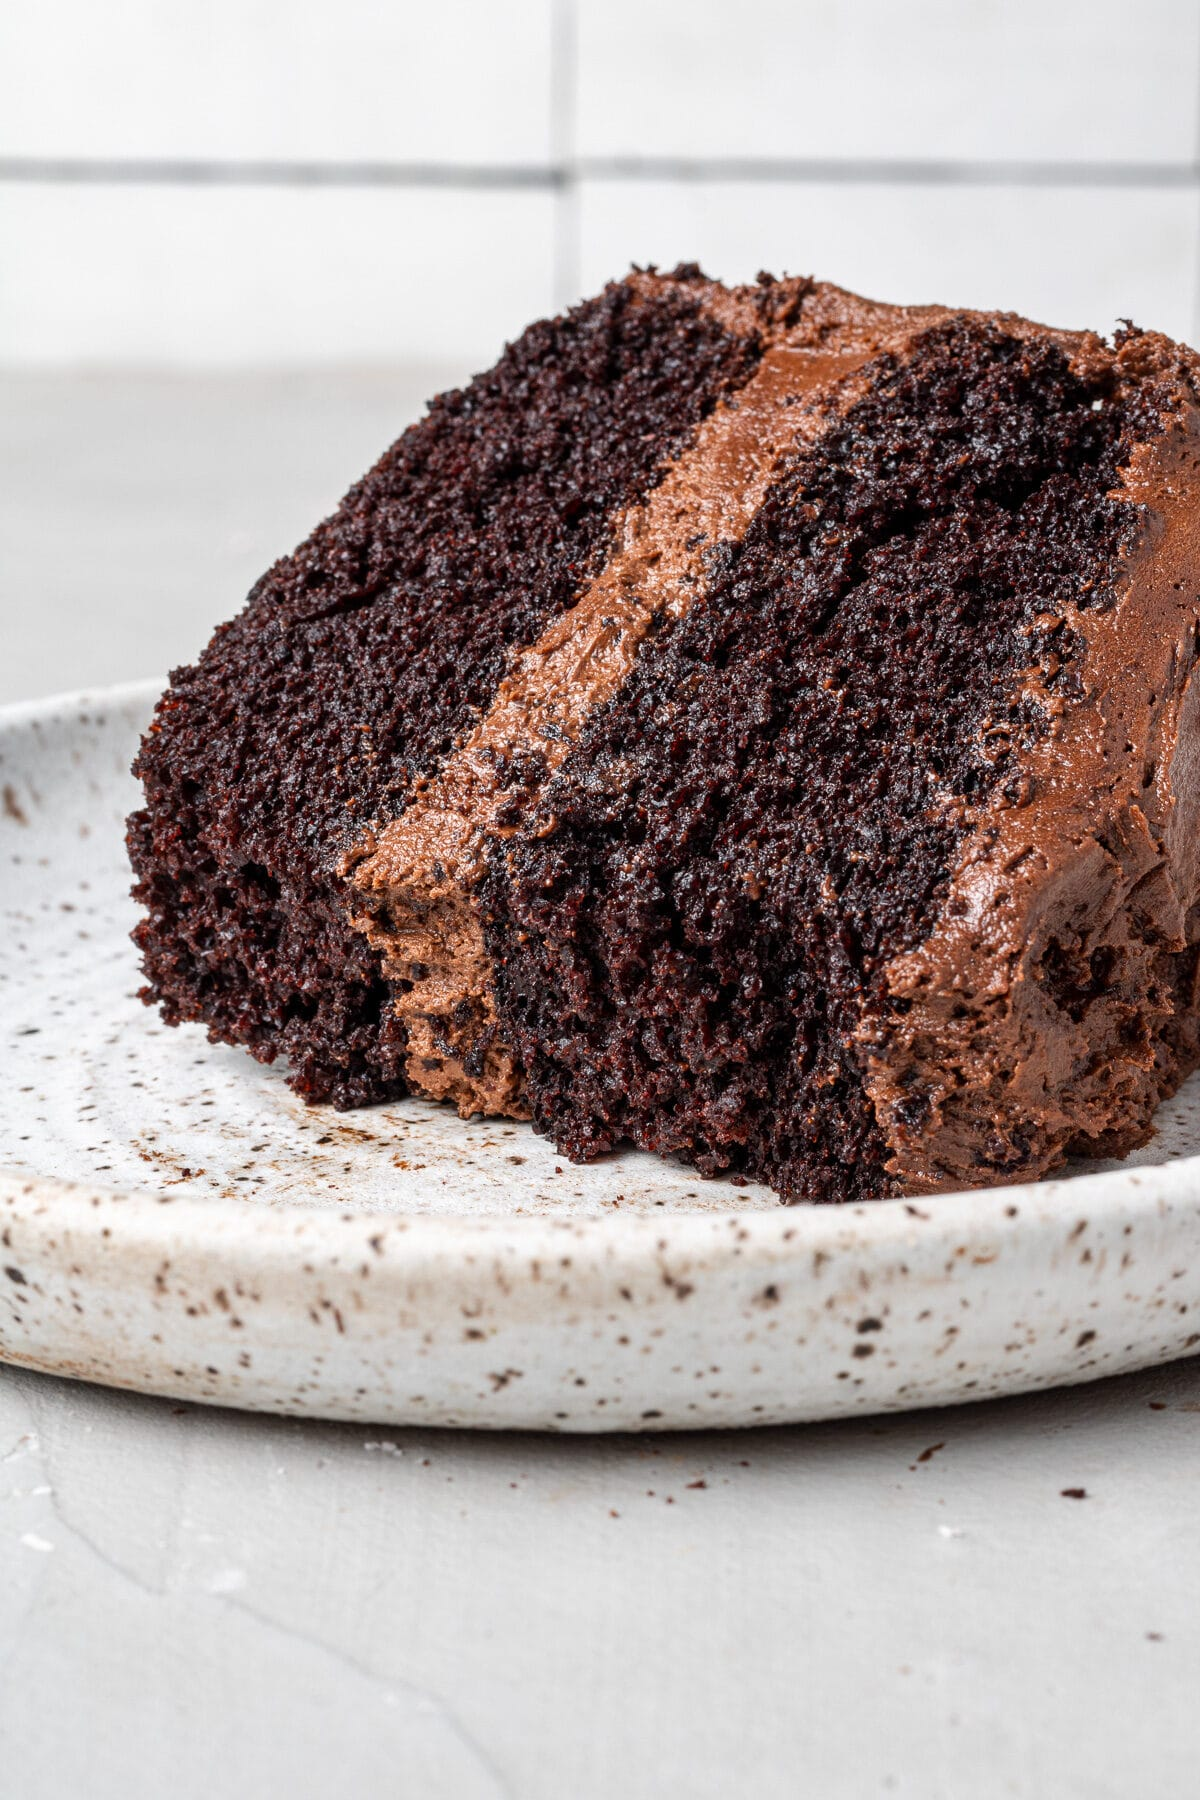 a thick slice of dairy free chocolate cake on a plate